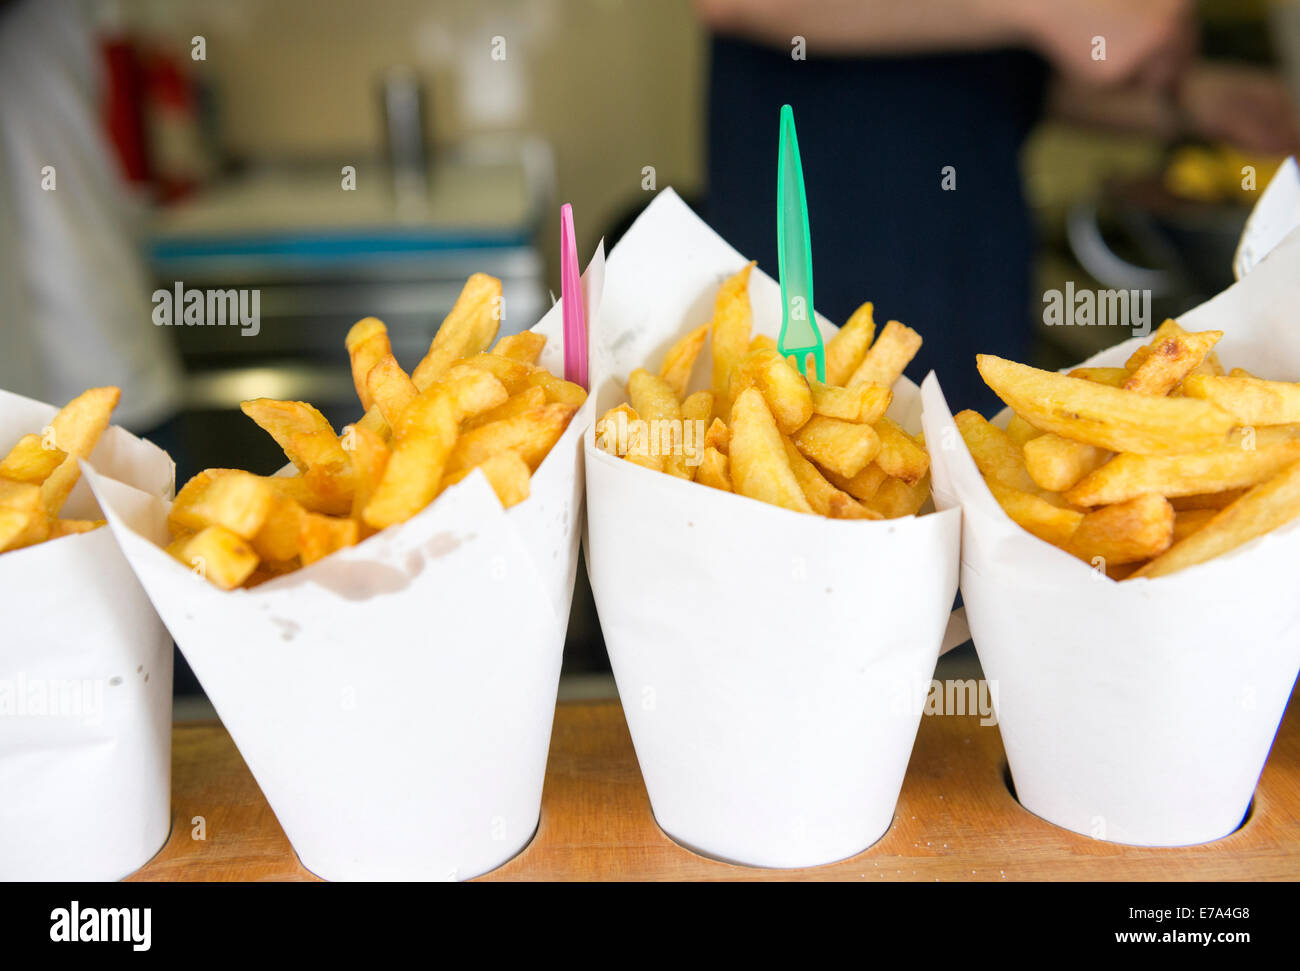 Belgian Frites in Brussels. - Stock Image